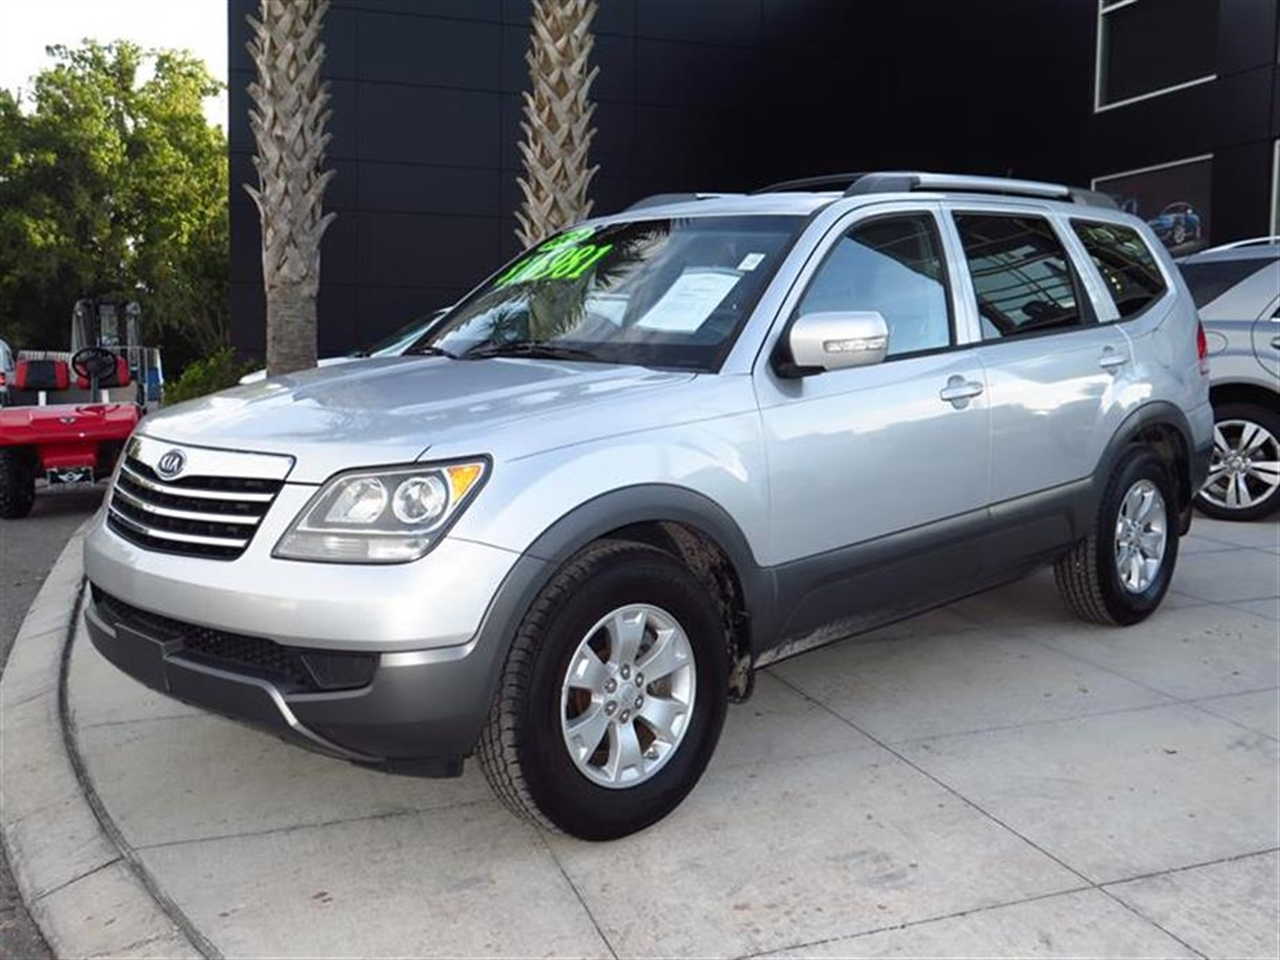 2009 KIA BORREGO 2WD 4dr V6 LX 89939 miles 3 pwr outlets -inc front center console cargo 2nd